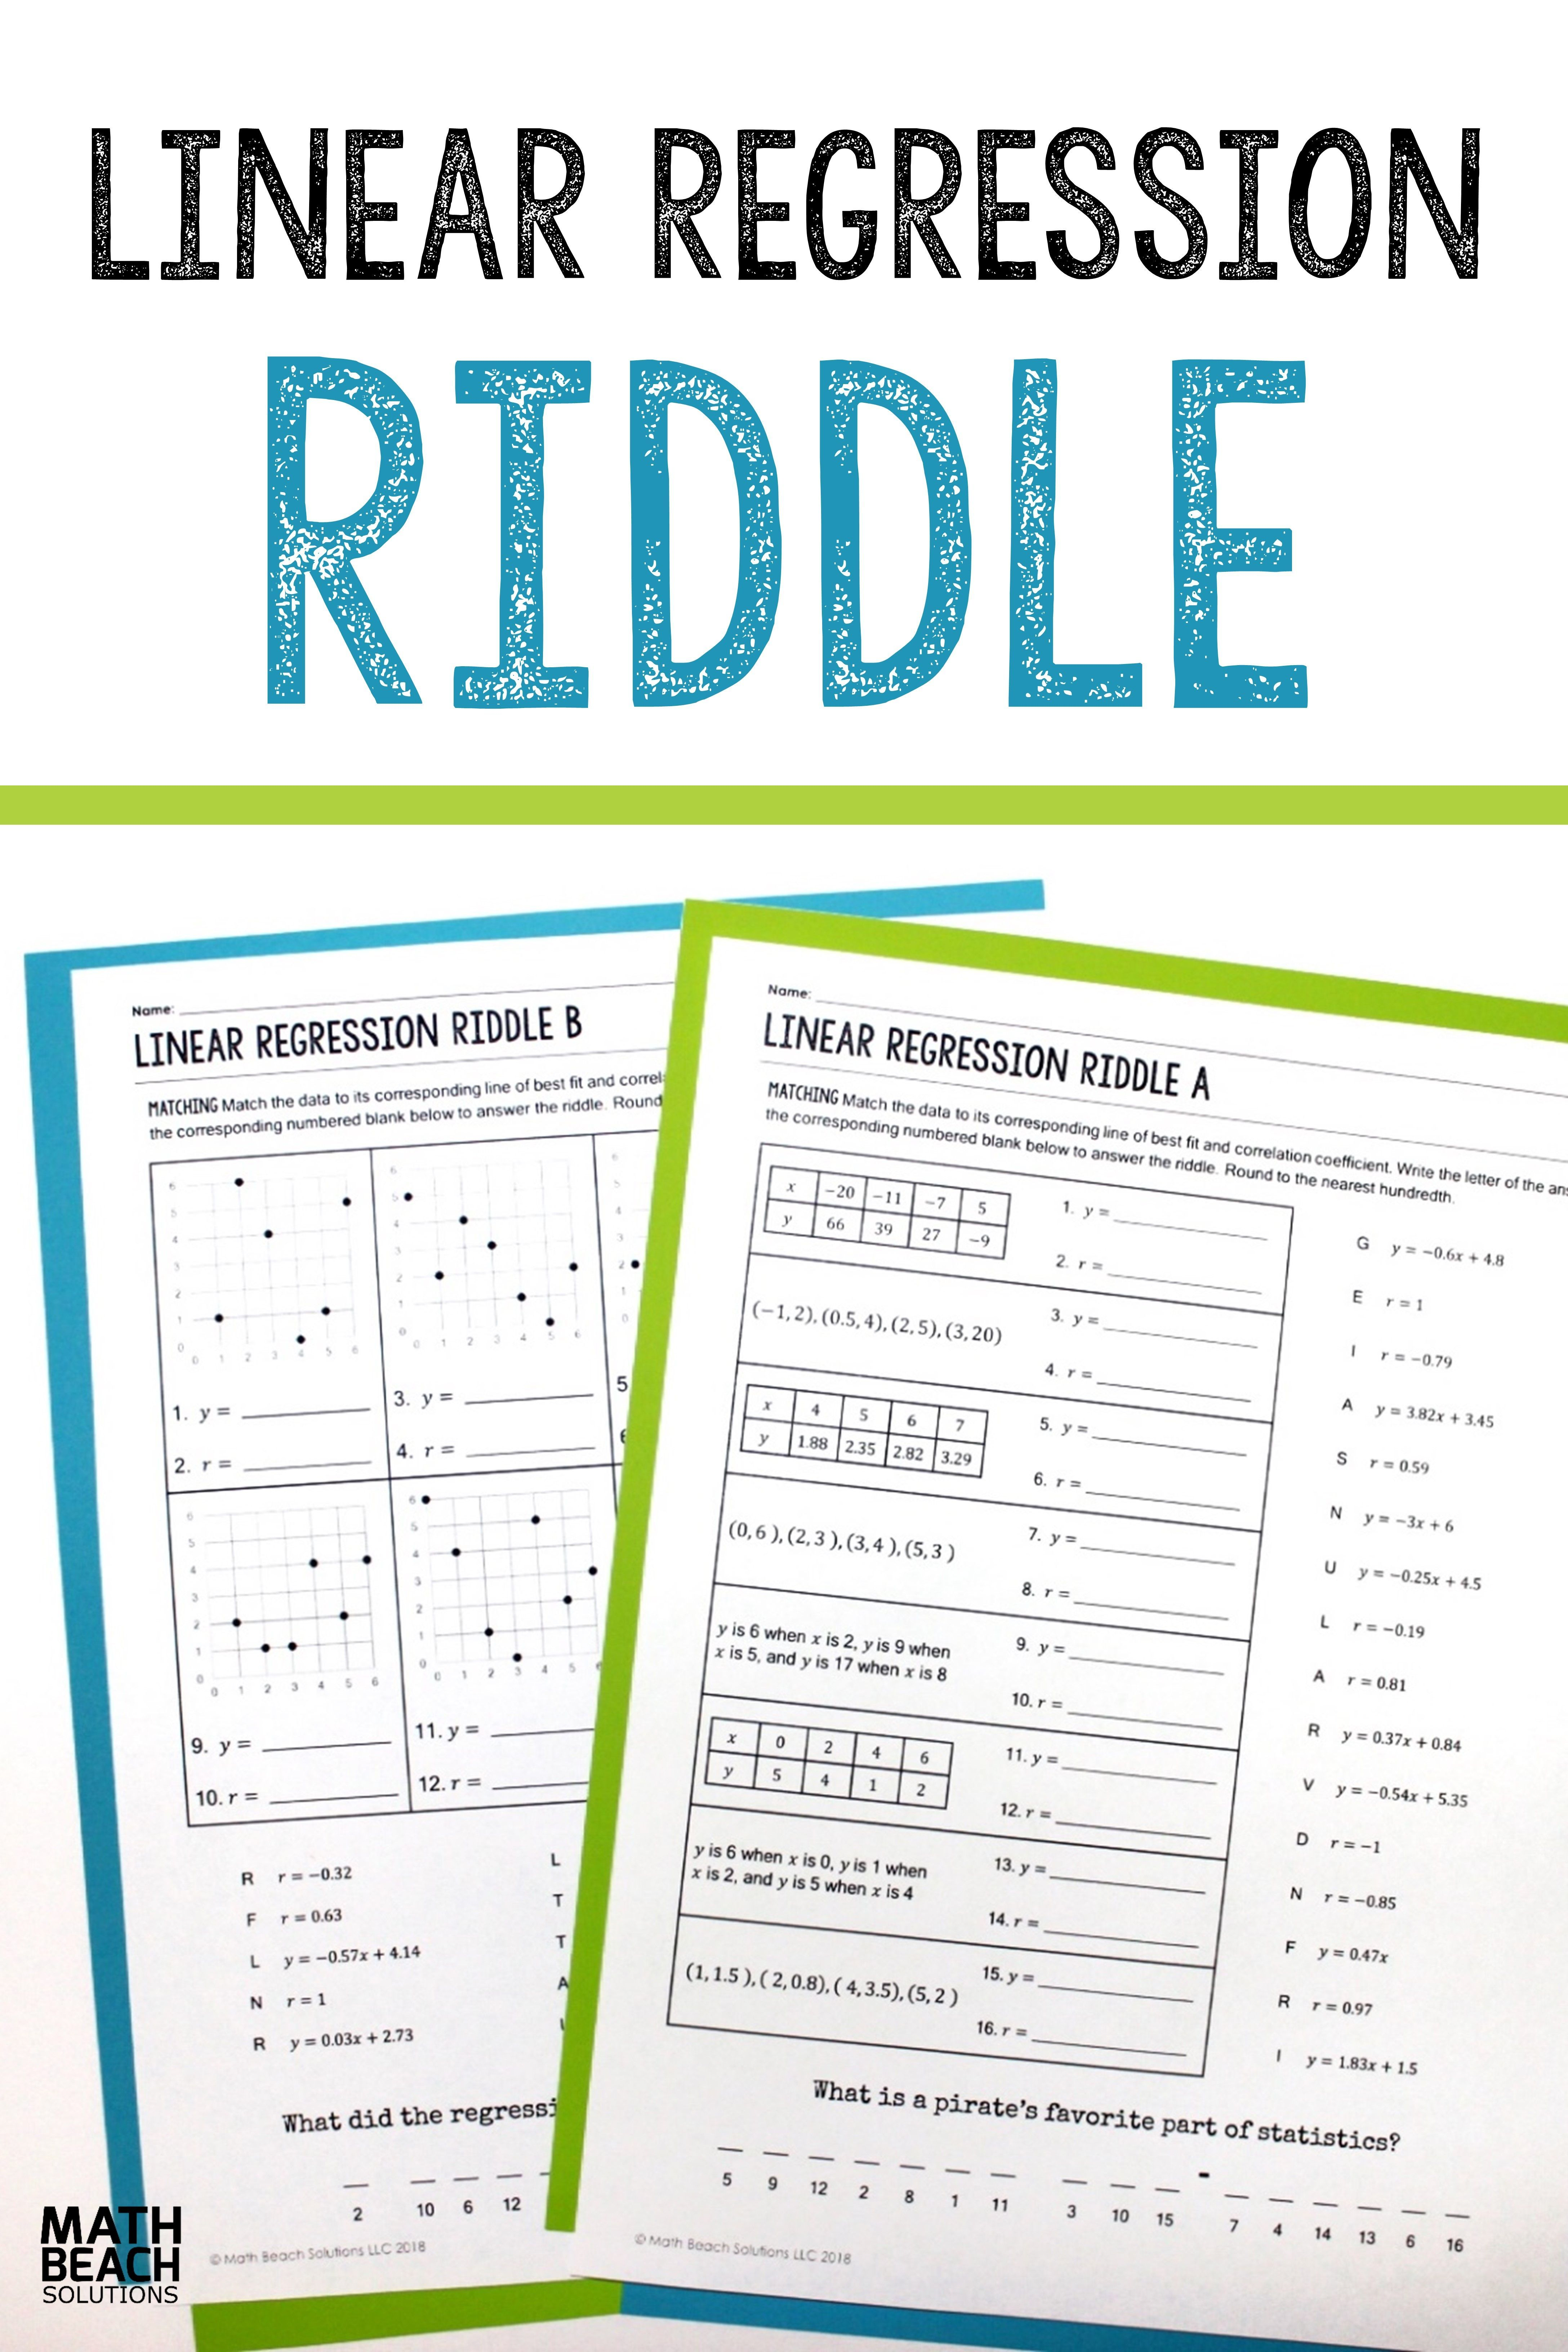 Linear Regression Riddle Activity